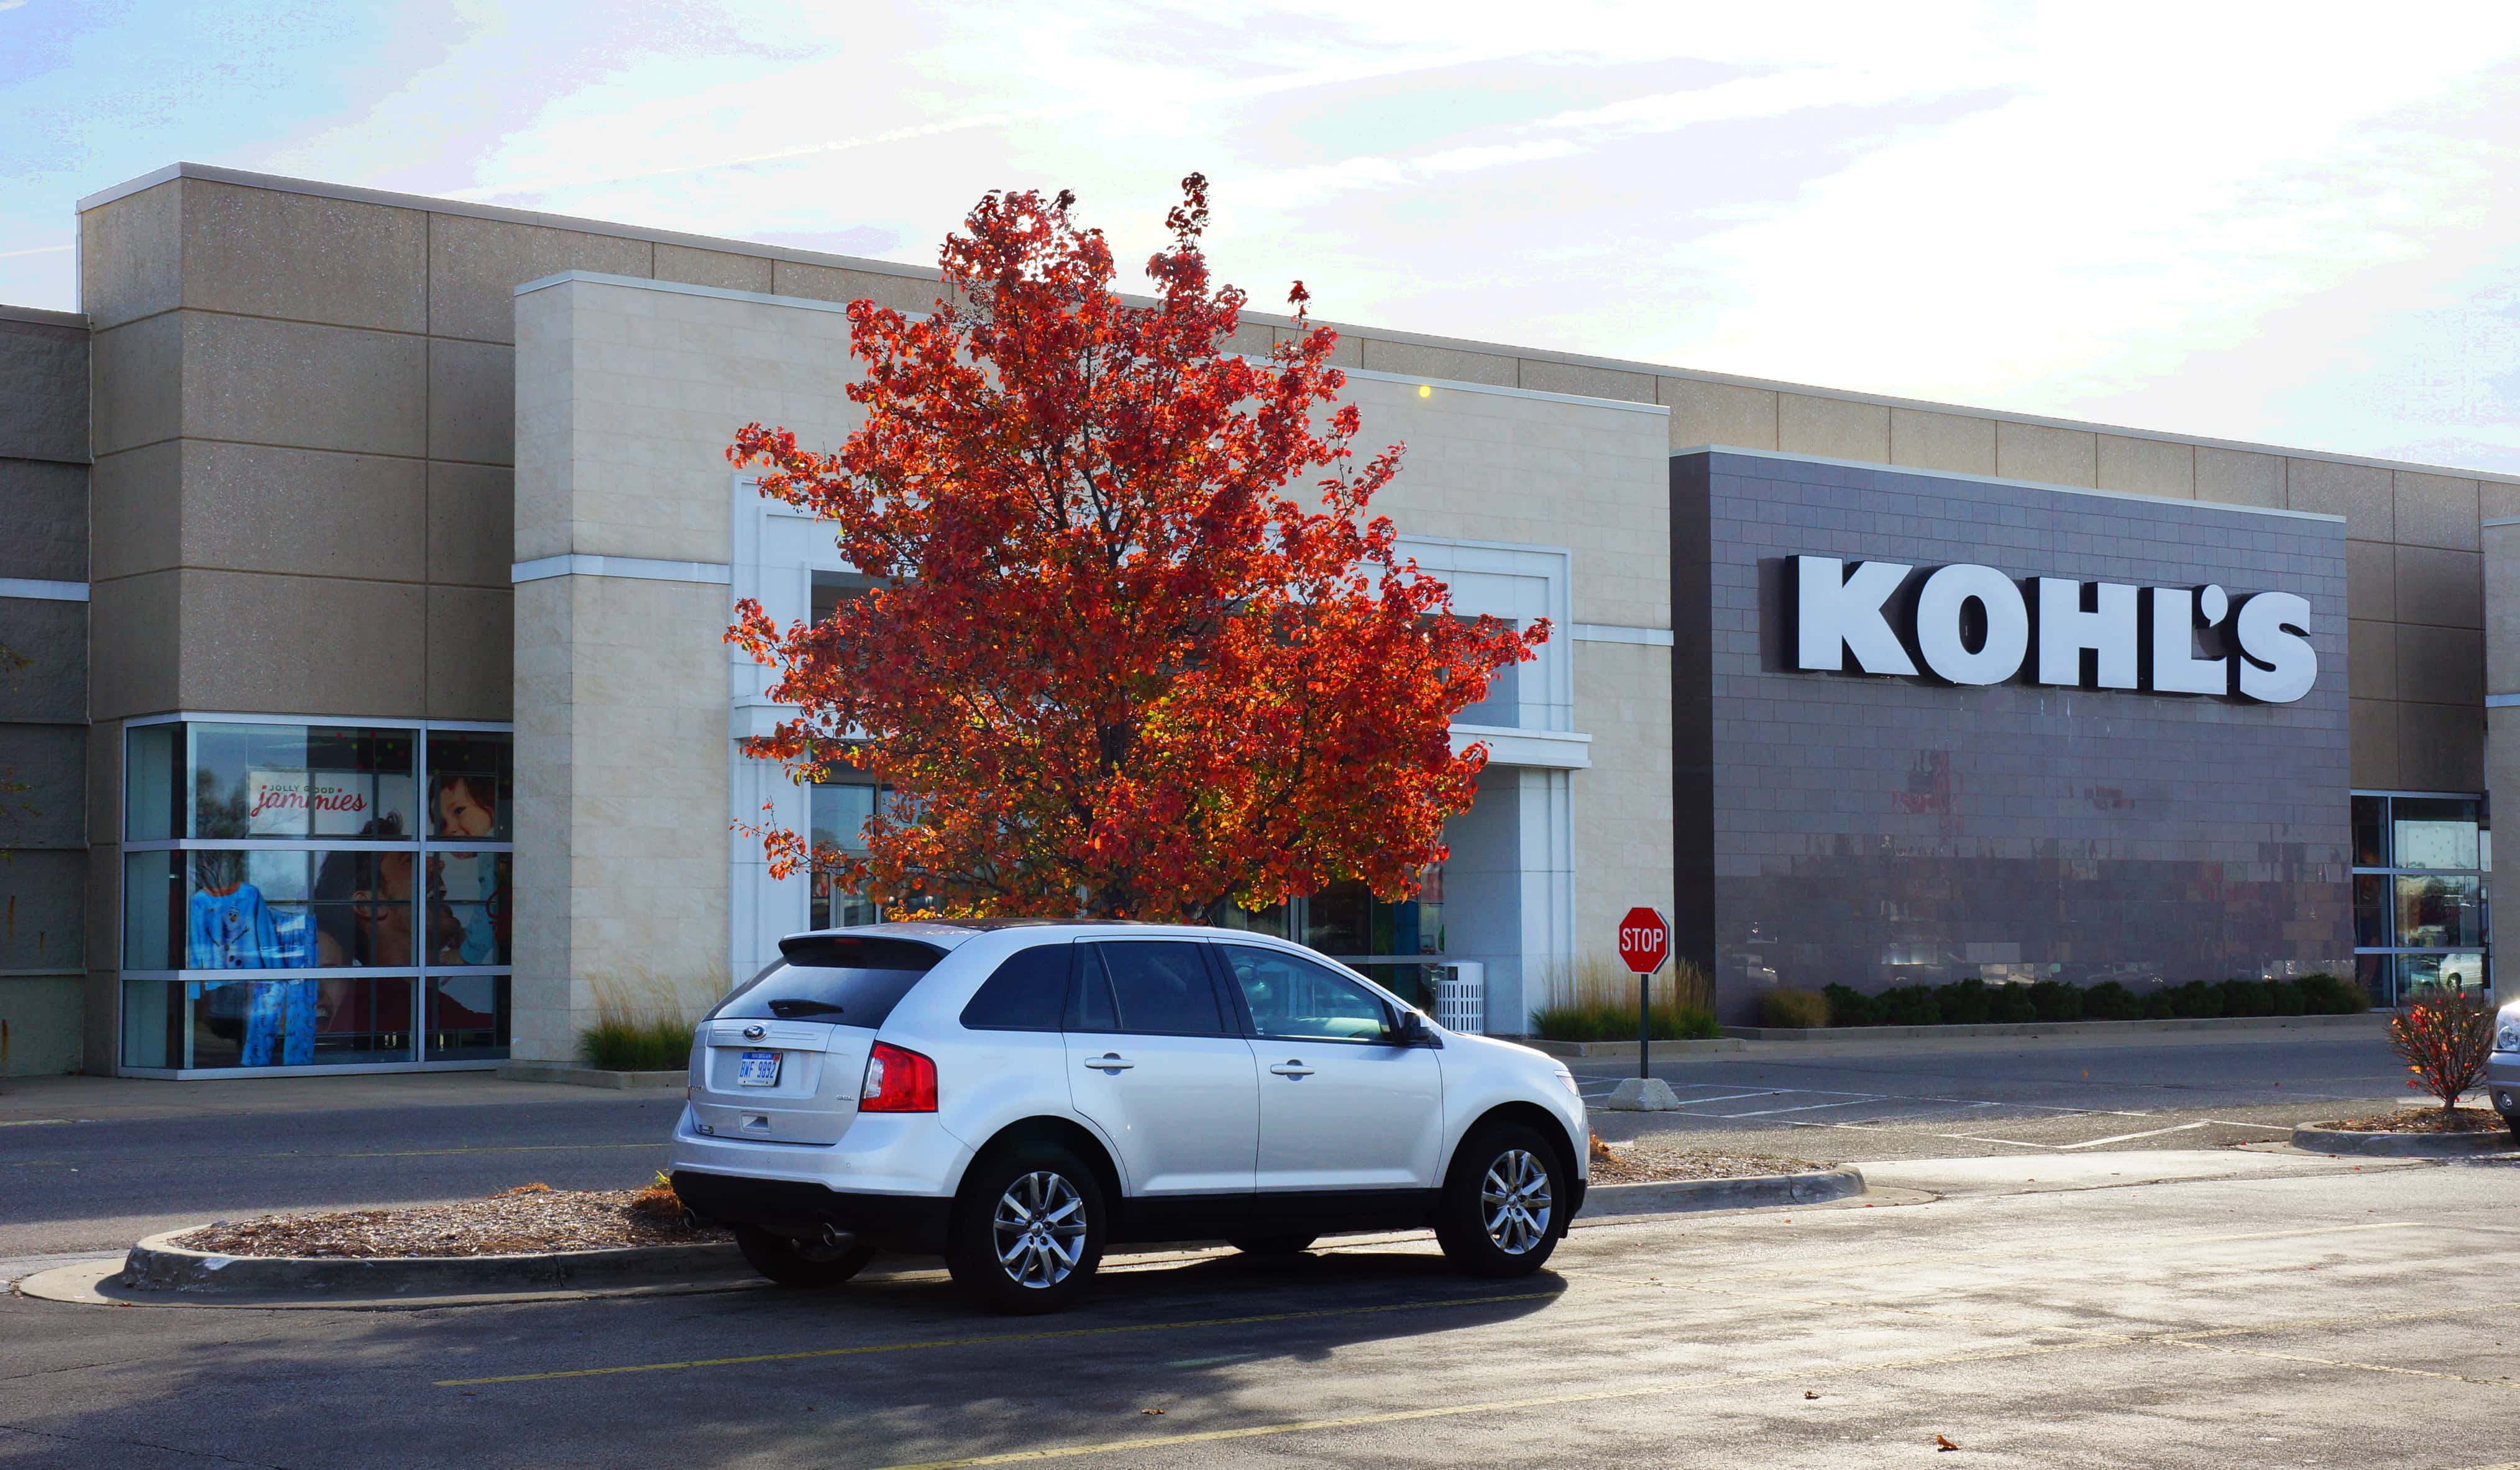 kohls reports robust sales for christmas holiday period just ended - Is Kohls Open On Christmas Day